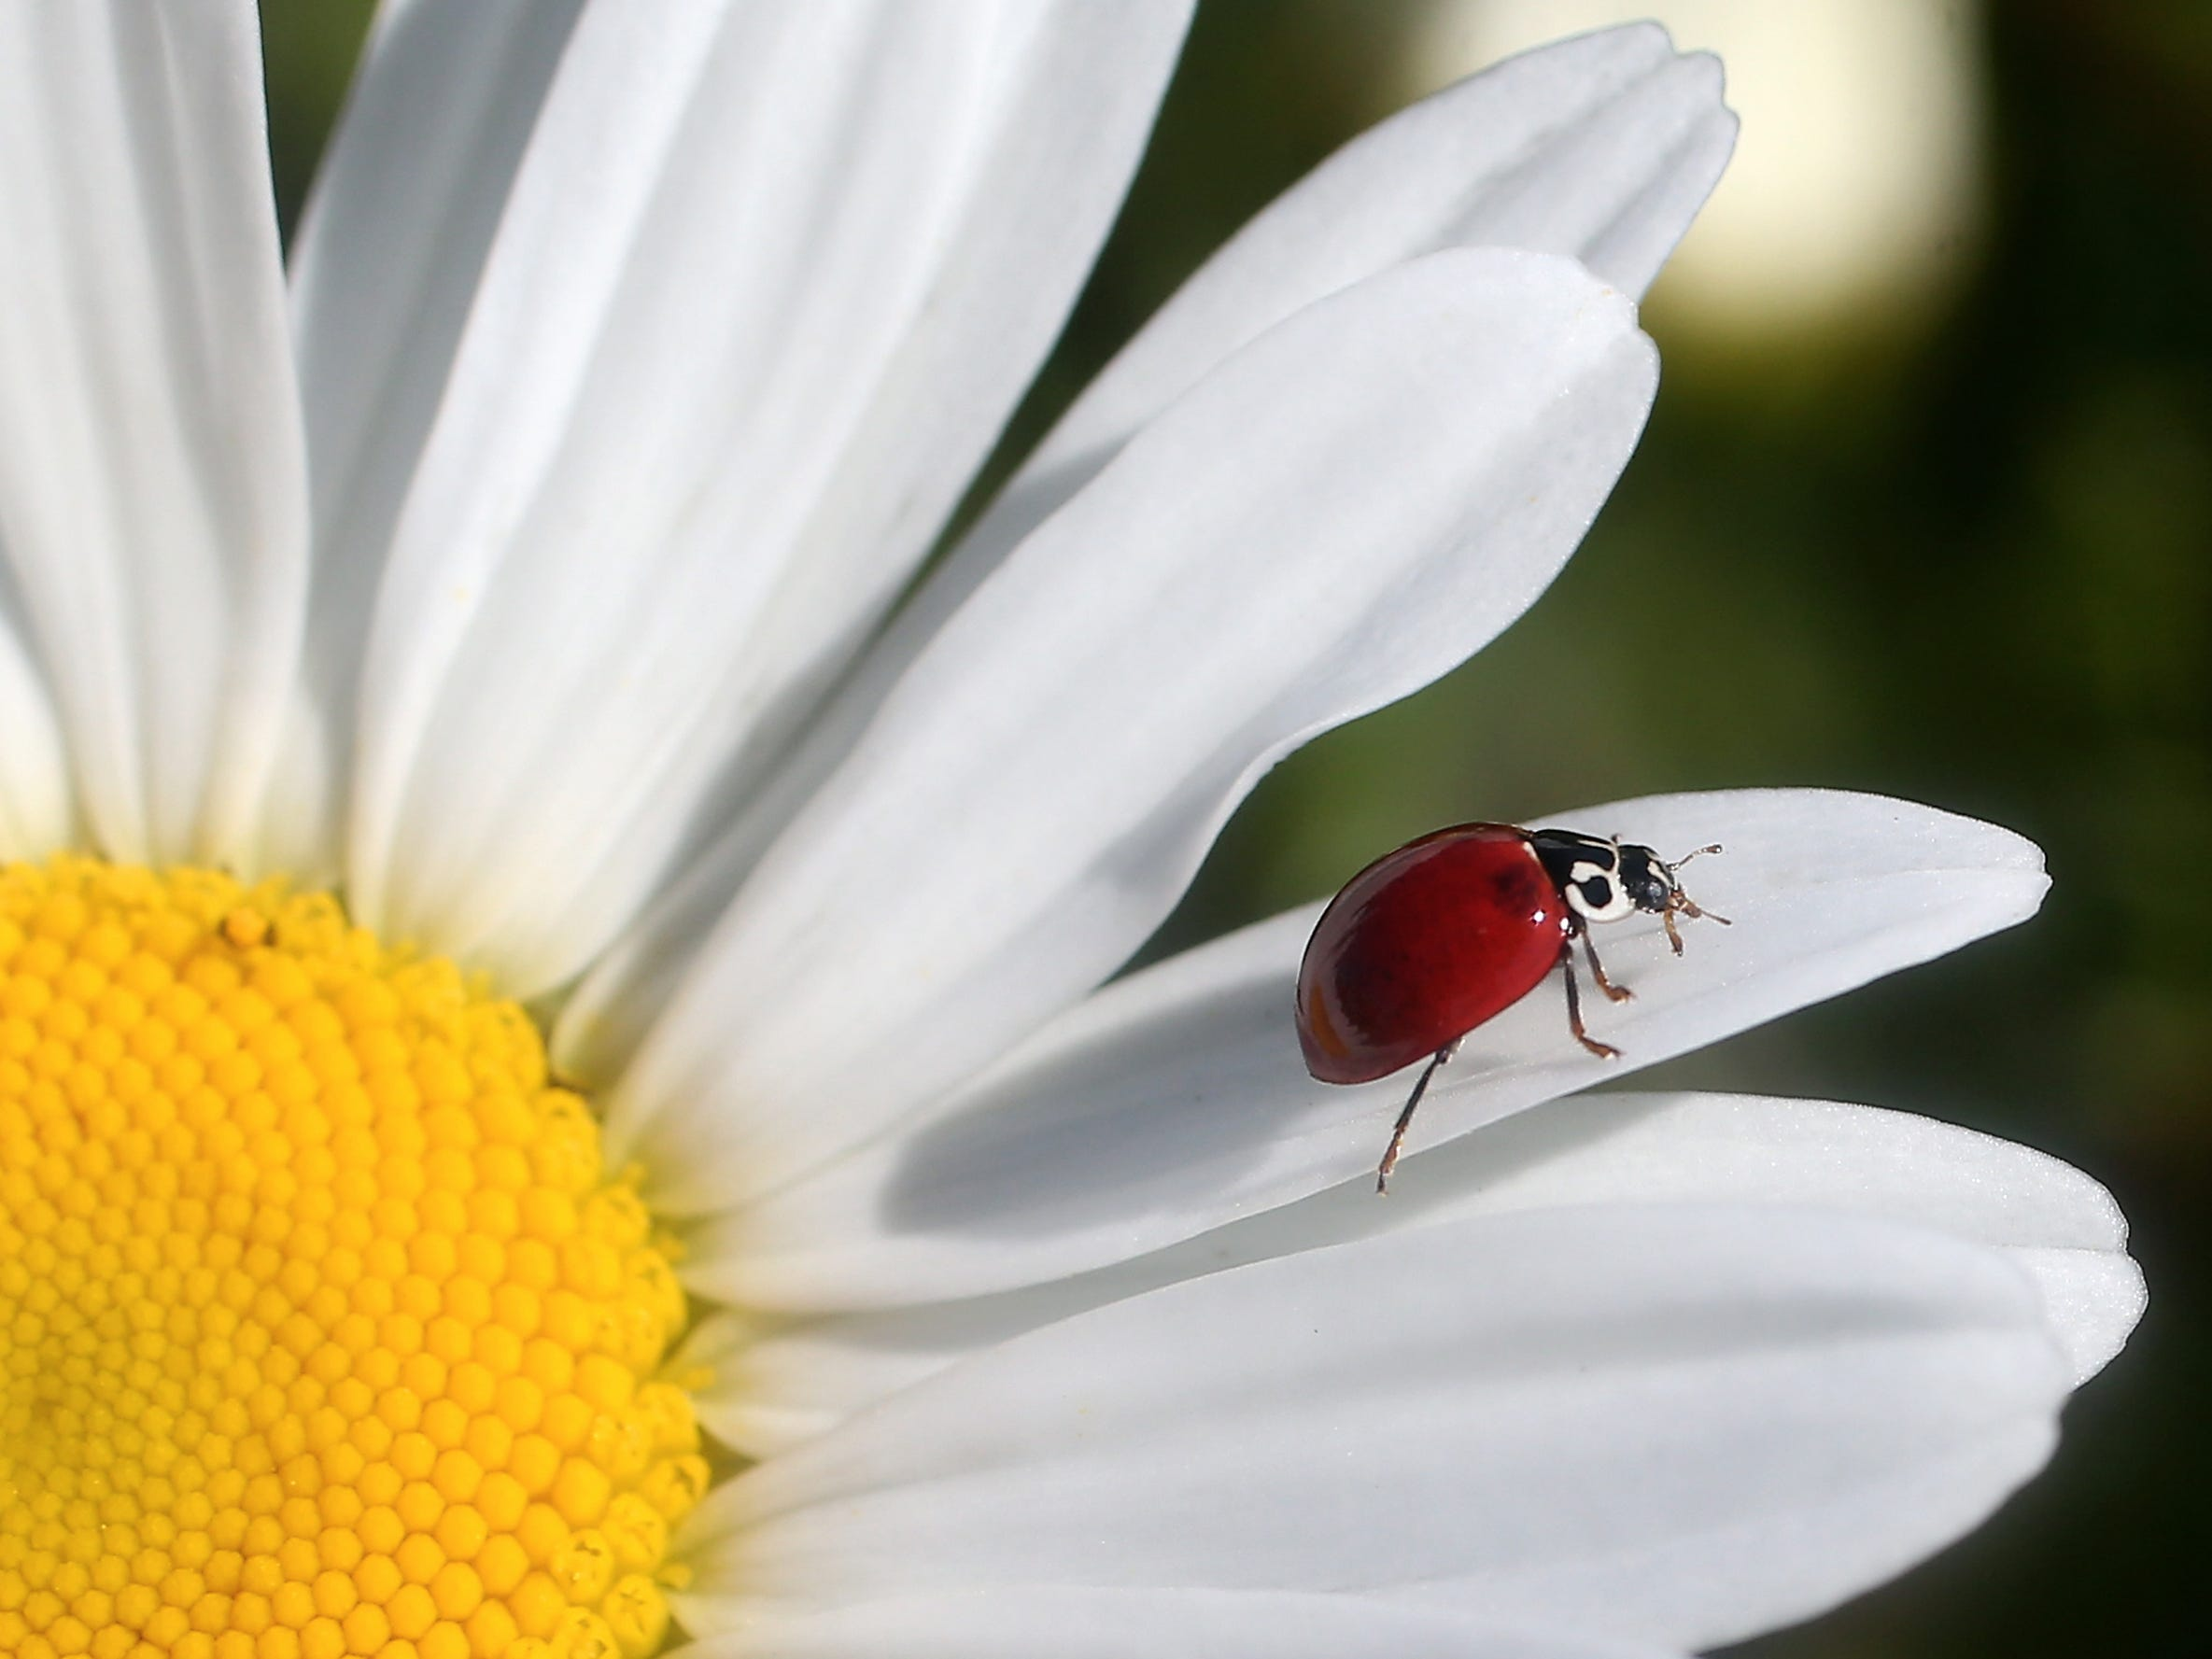 A lady beetle walks out to the the end of a daisy petal in search of aphids in Bremerton's Blueberry Park on Tuesday, May 22, 2018.